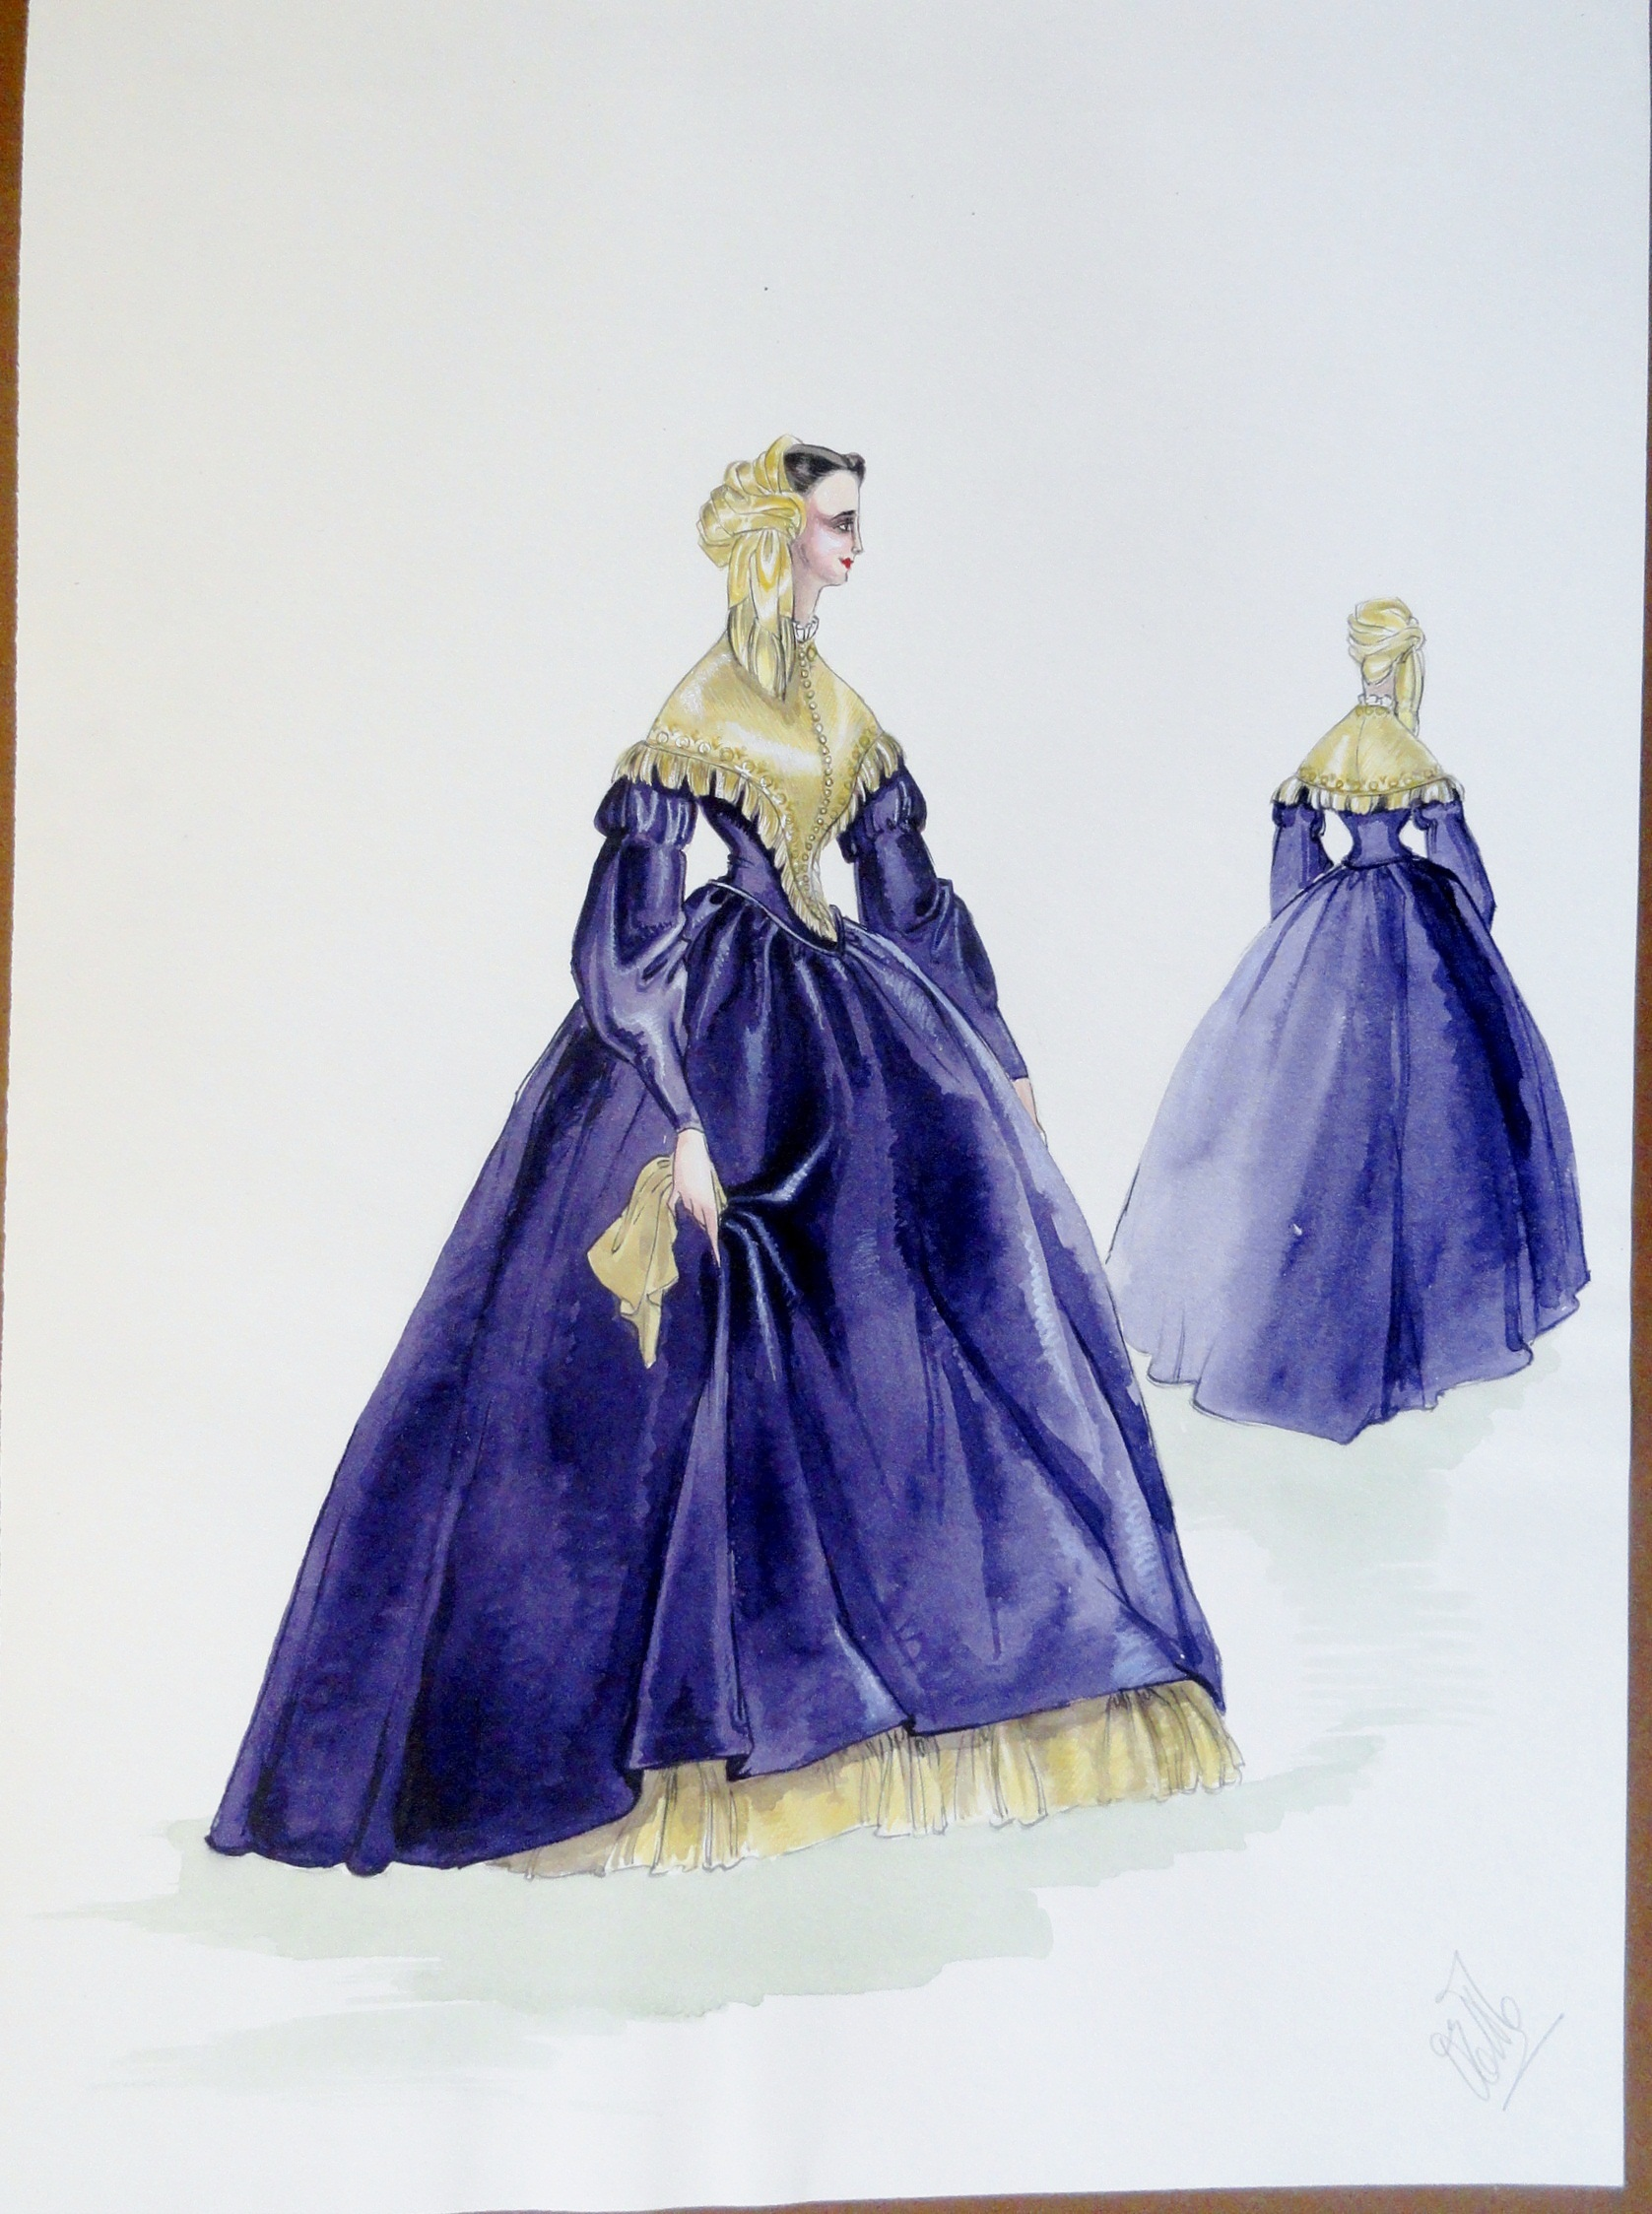 Rachel Felix in long purple dress and gold shawl. Pen and ink and watercolor. Signed.  From the Rachel Portfolio by Owen Hyde Clark.